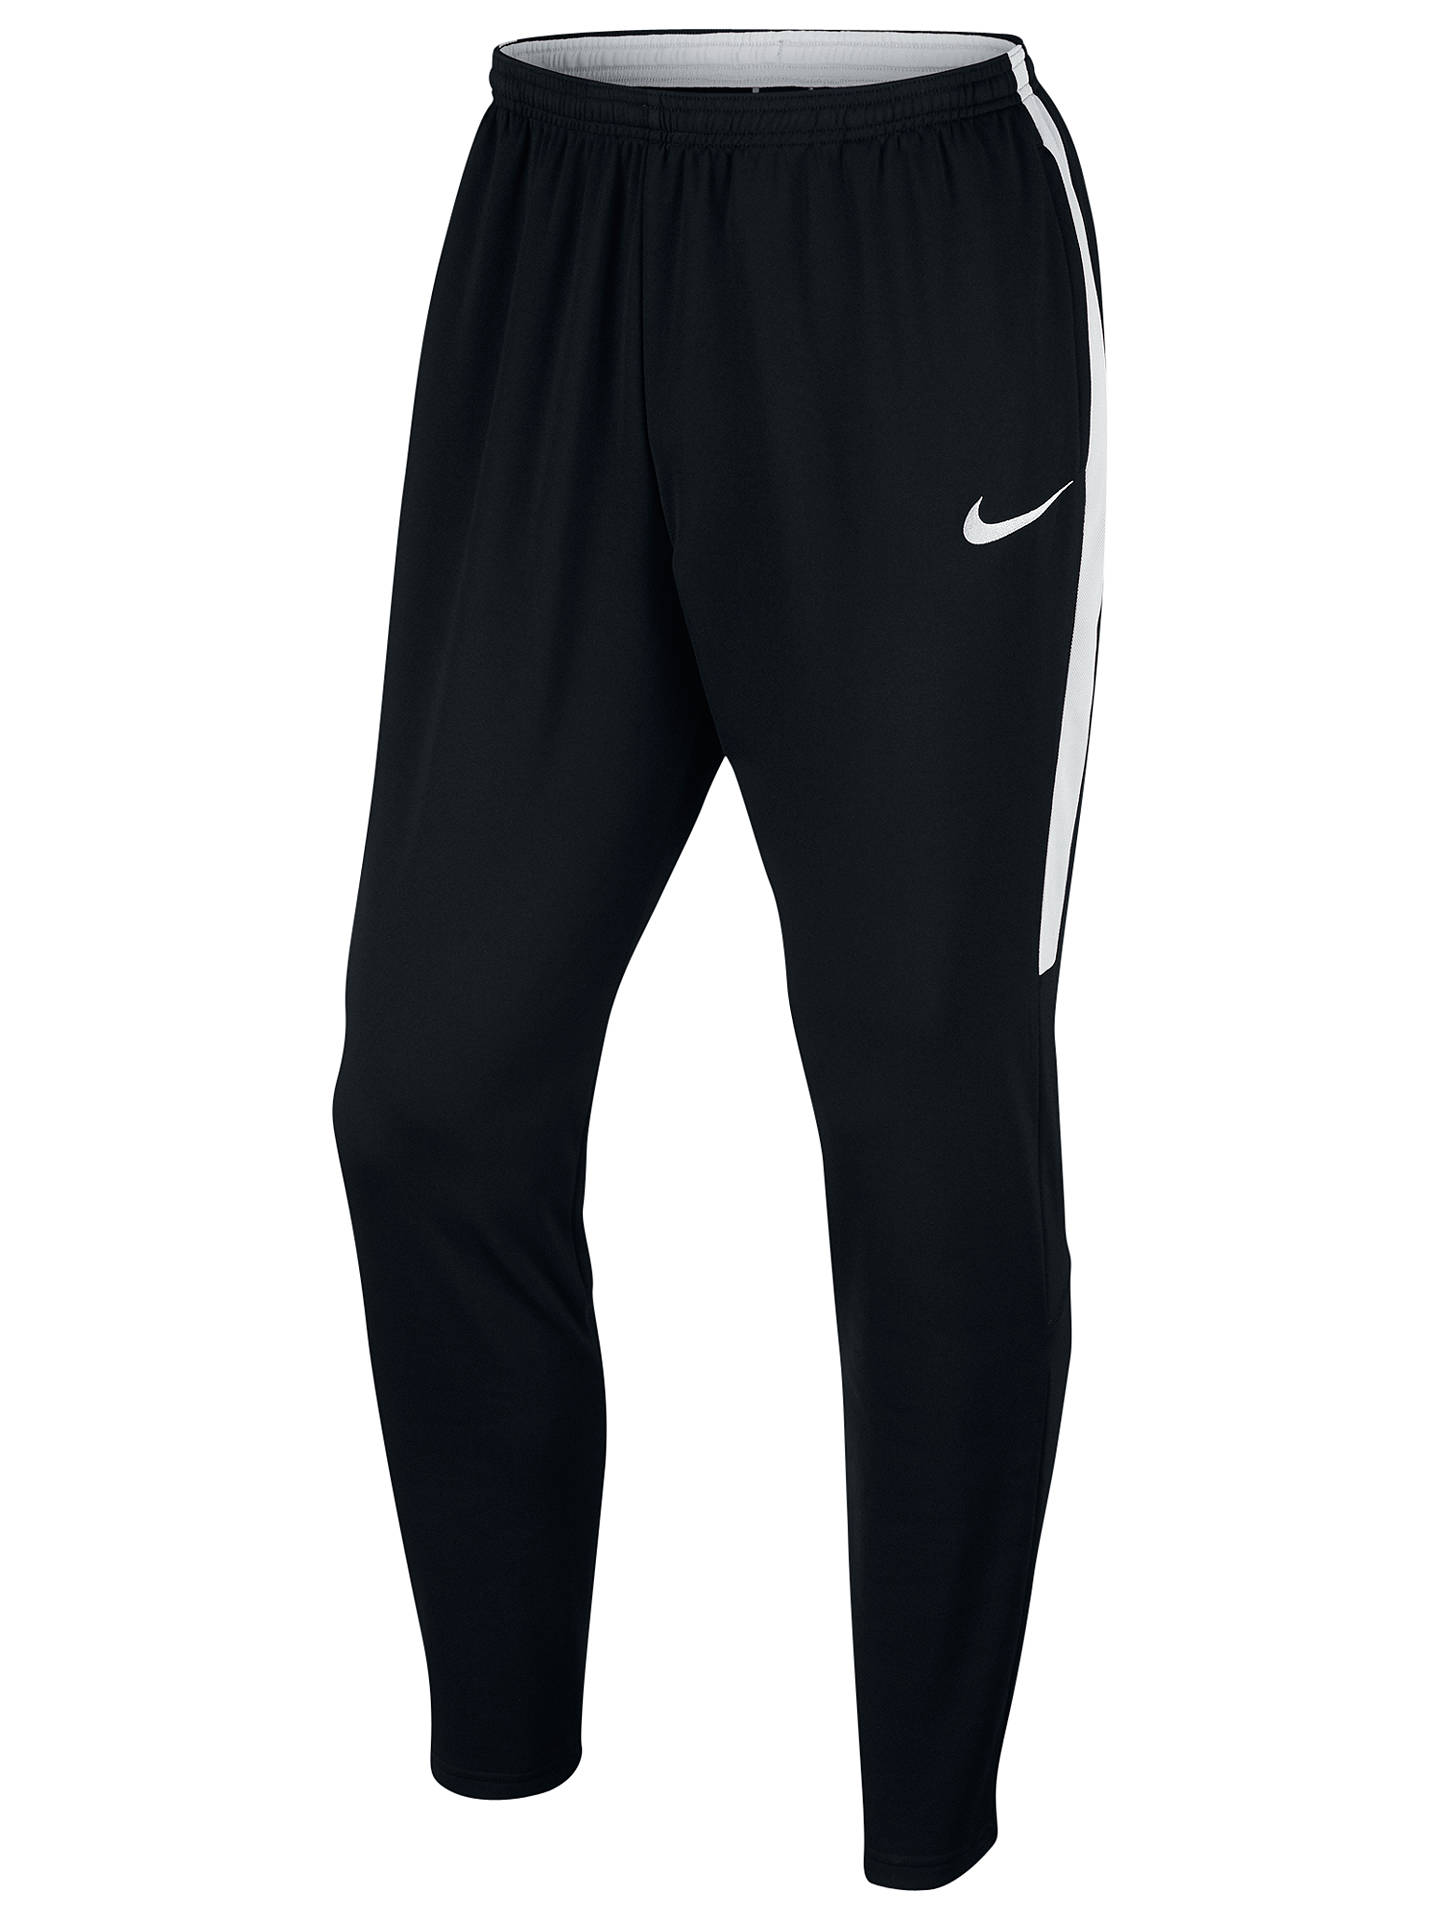 cc1d58291 Buy Nike Dry Academy Football Tracksuit Bottoms, Black/White, S Online at  johnlewis ...